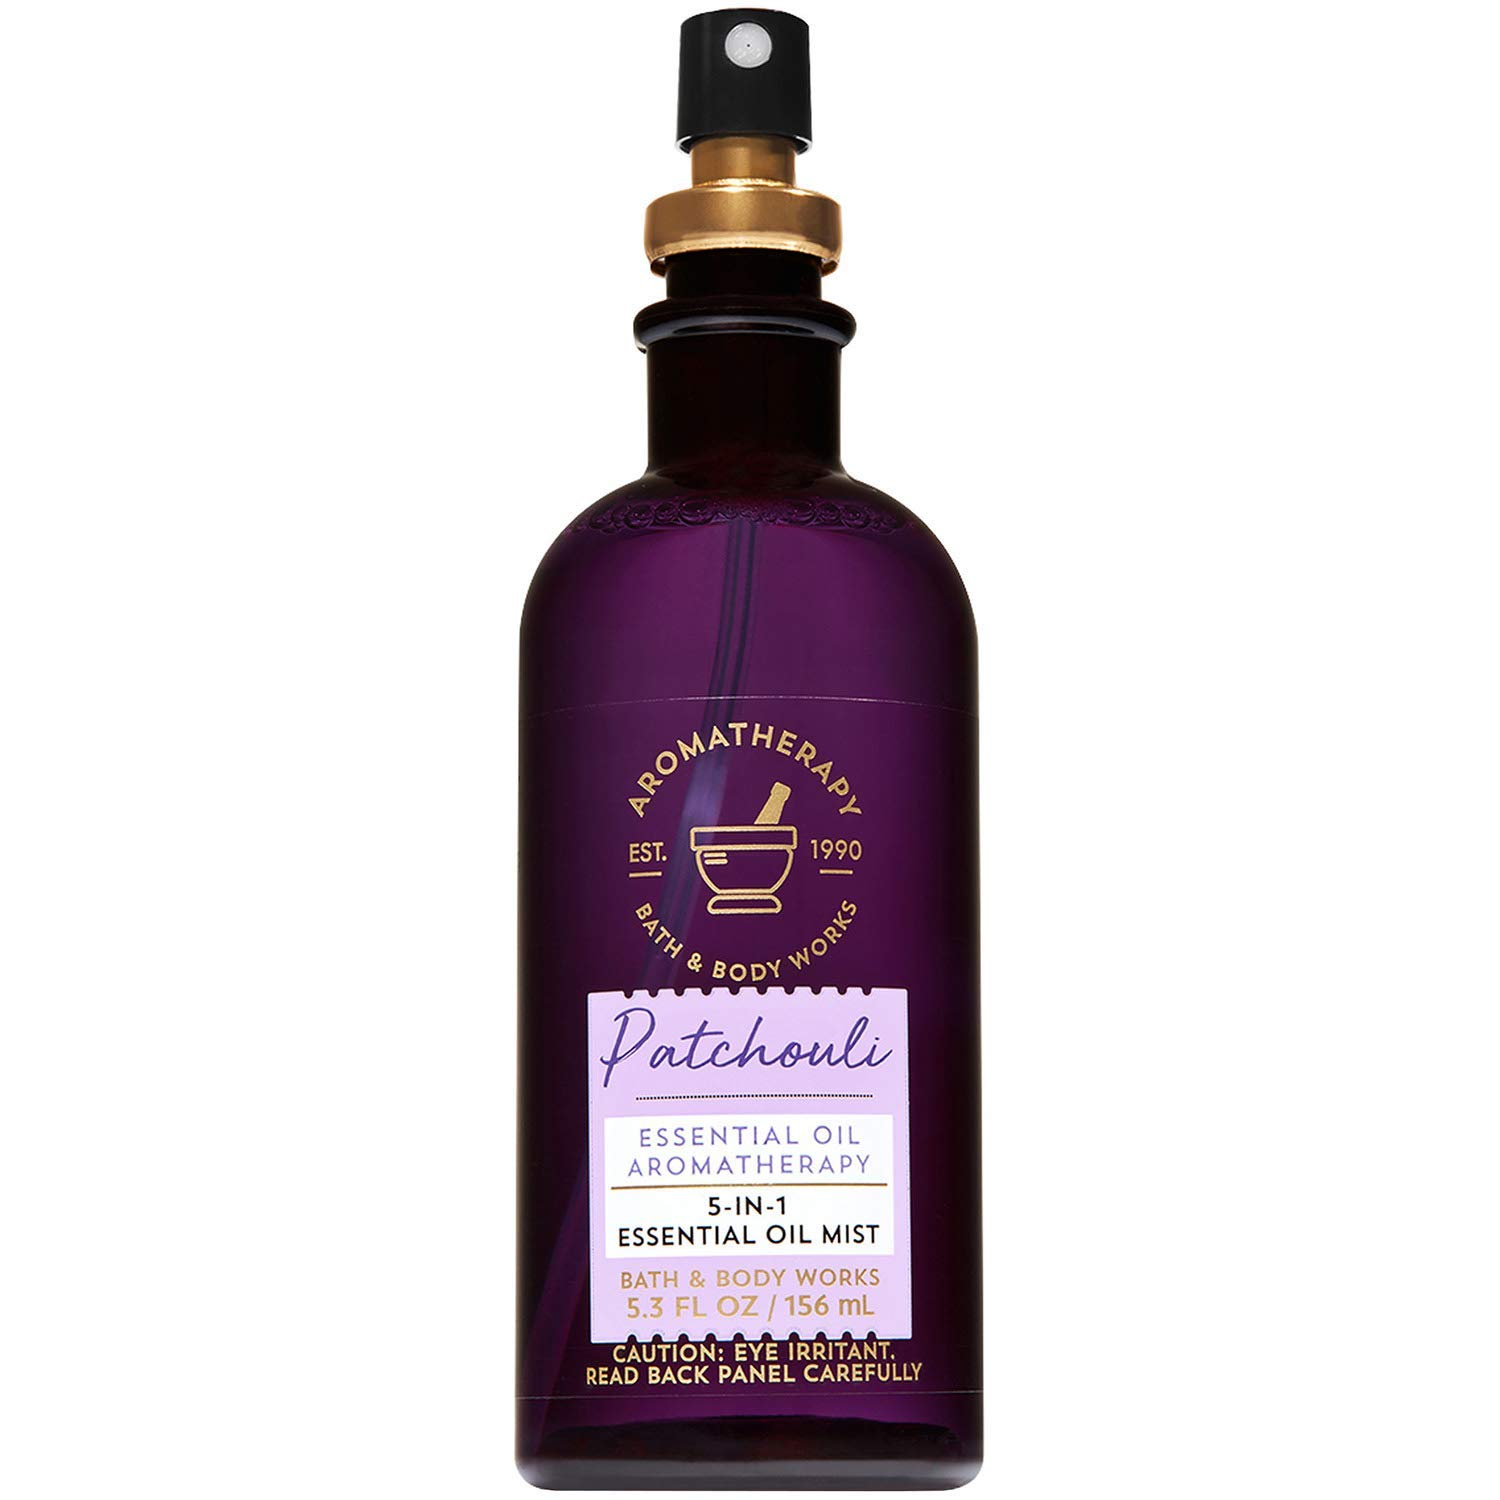 Bath and Body Works Aromatherapy Patchouli 5-in-1 Essential Oil Mist (Alcohol-Free) 5.3 Fluid Ounce by Bath & Body Works